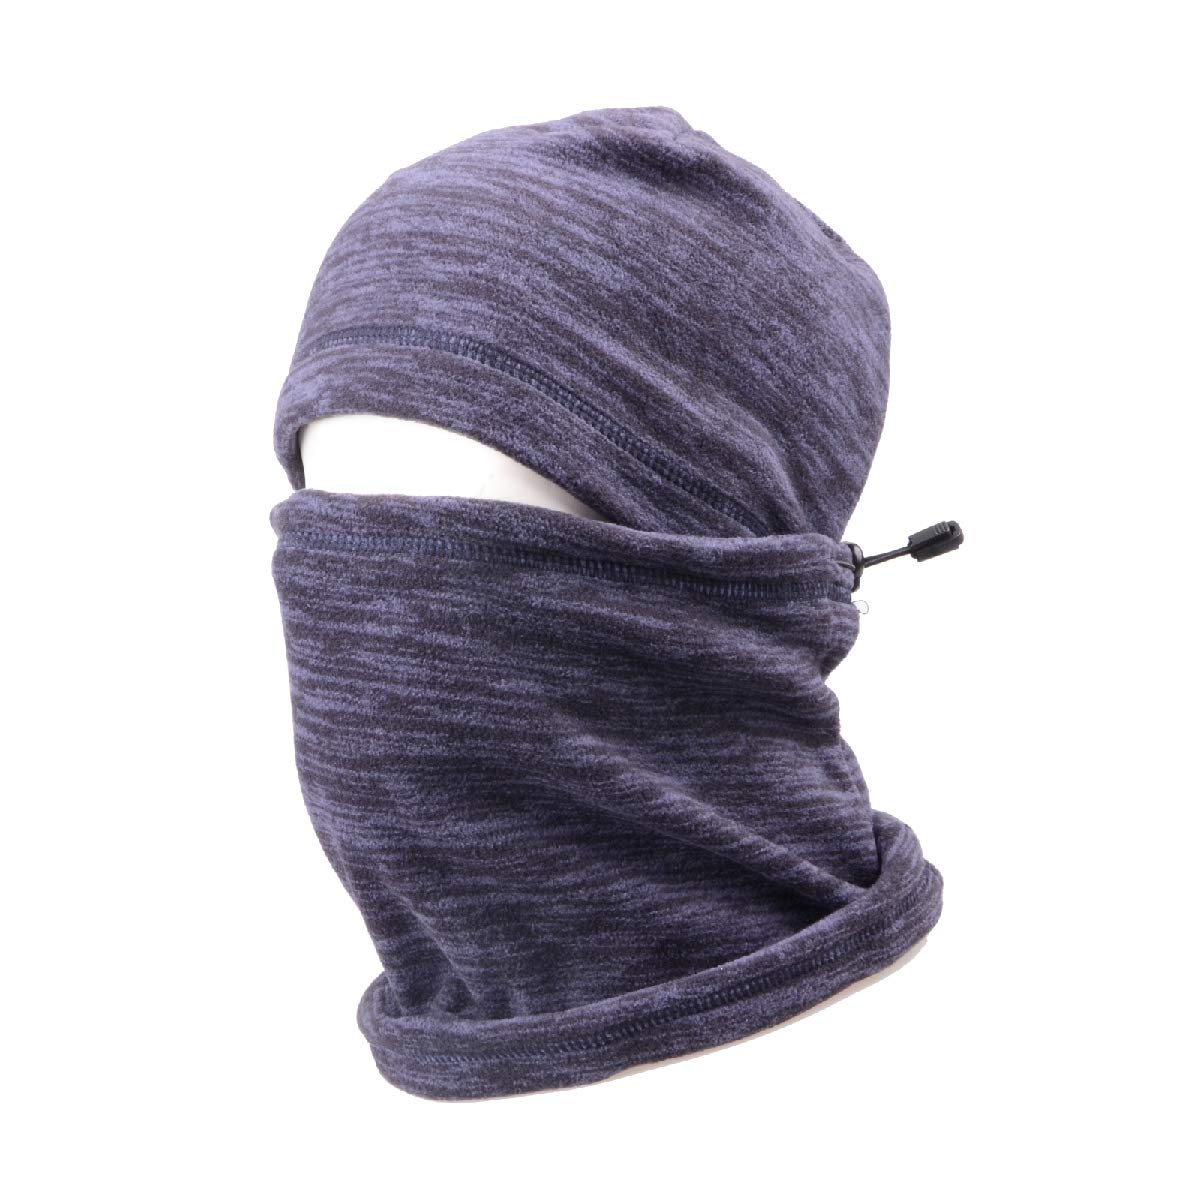 Triwonder Balaclava Hood Hat Thermal Fleece Face Mask Neck Warmer Winter Ski Mask Full Face Cover Cap (Blue - 17) OS1710BE